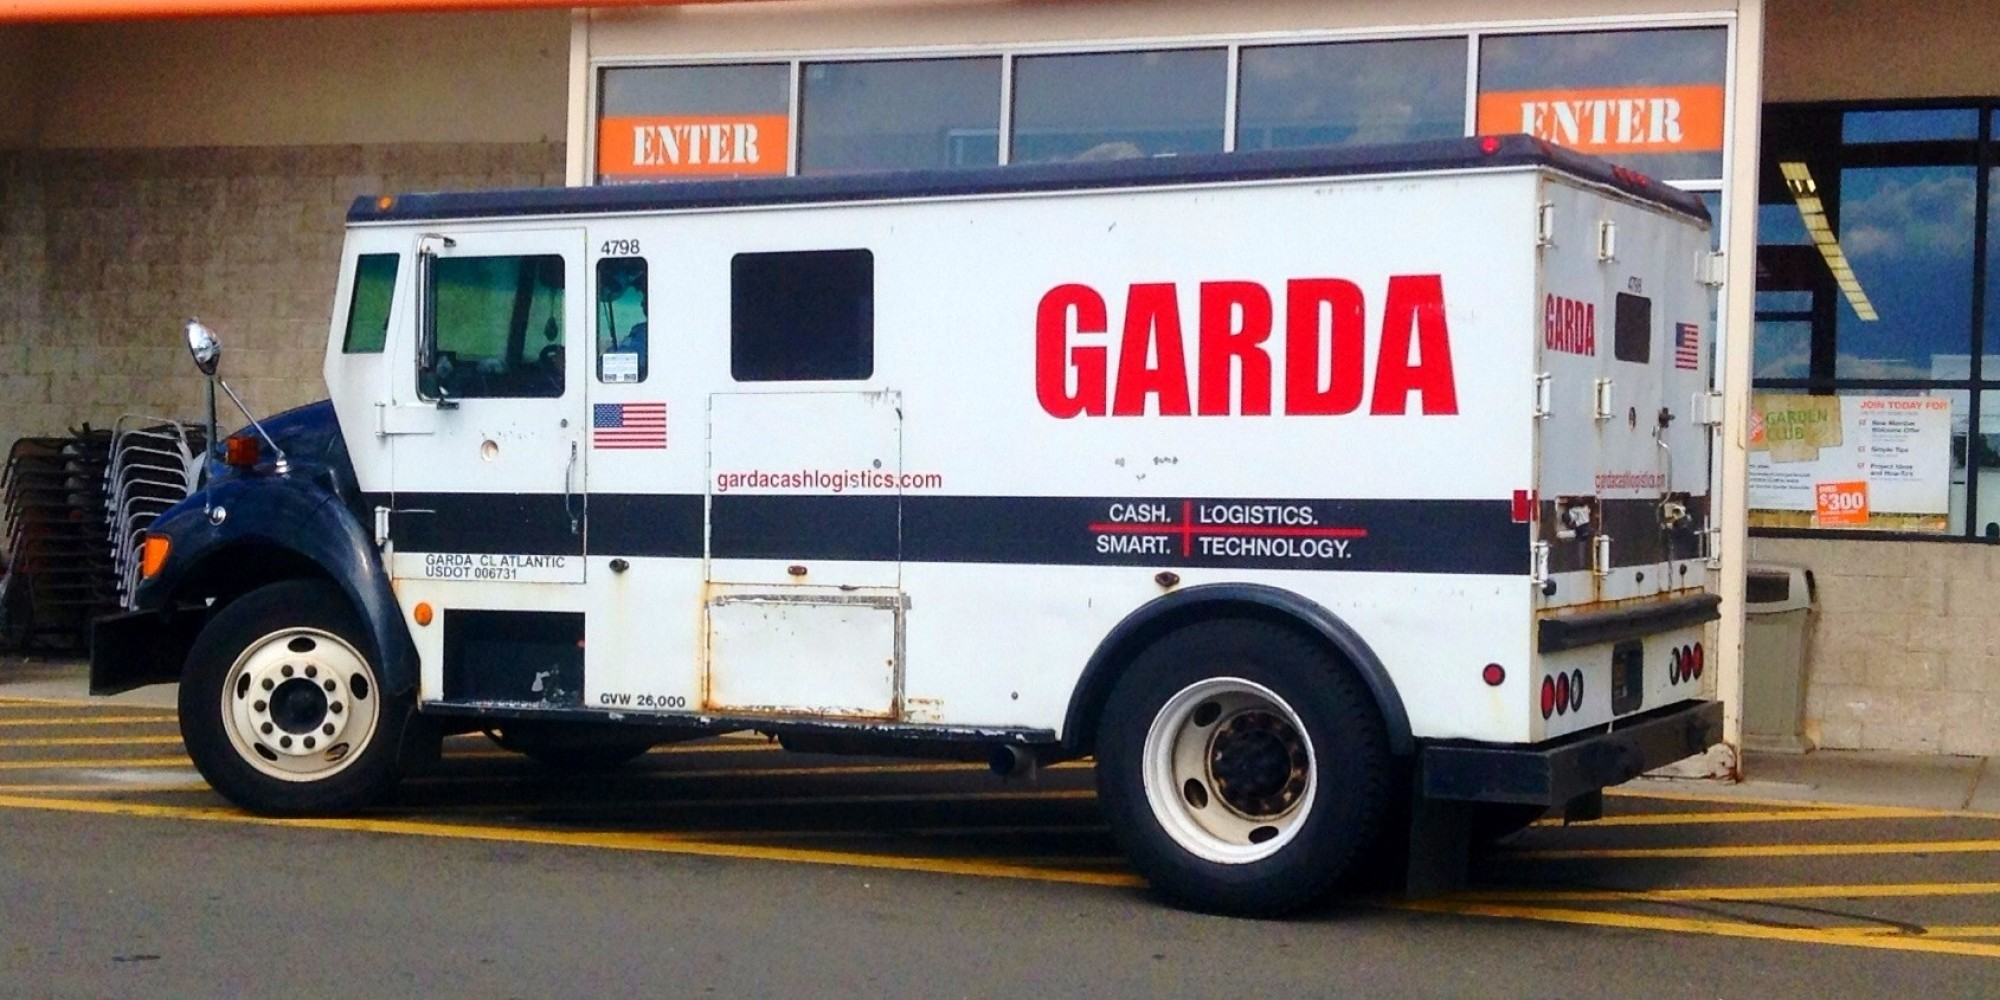 Armored Truck for Cash & Product Transport